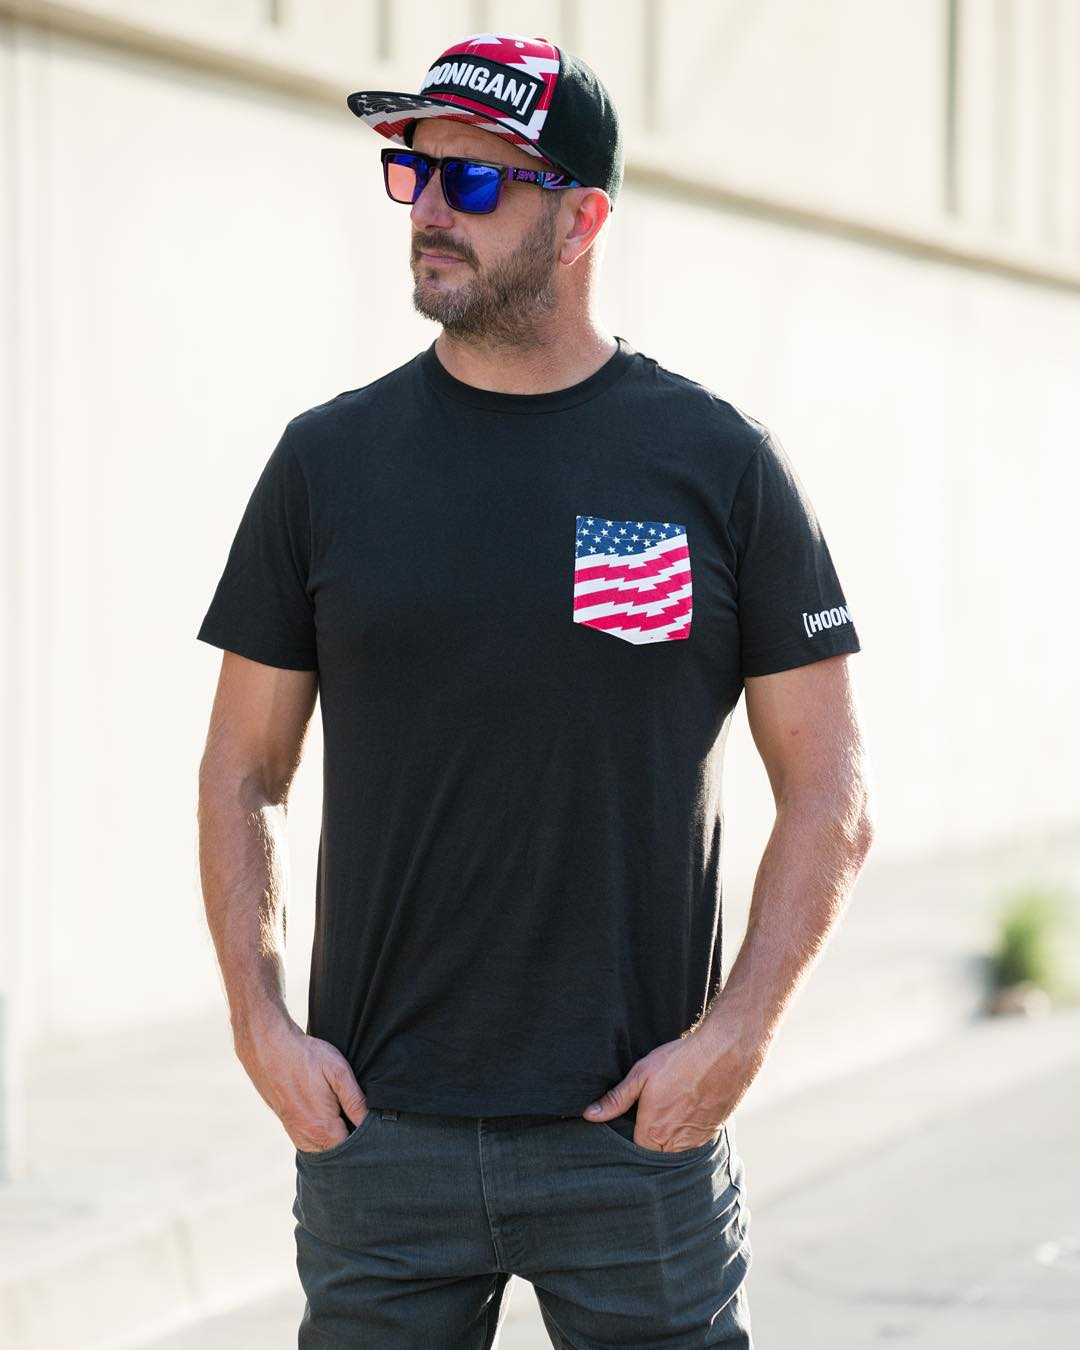 If you happen to get dragged out to a mall this week make sure to stop into @zumiez, they are stocked with that Stars and Stripes gear we're sold out of. HHIC @kblock43 in the Stars and Stripes pocket tee.